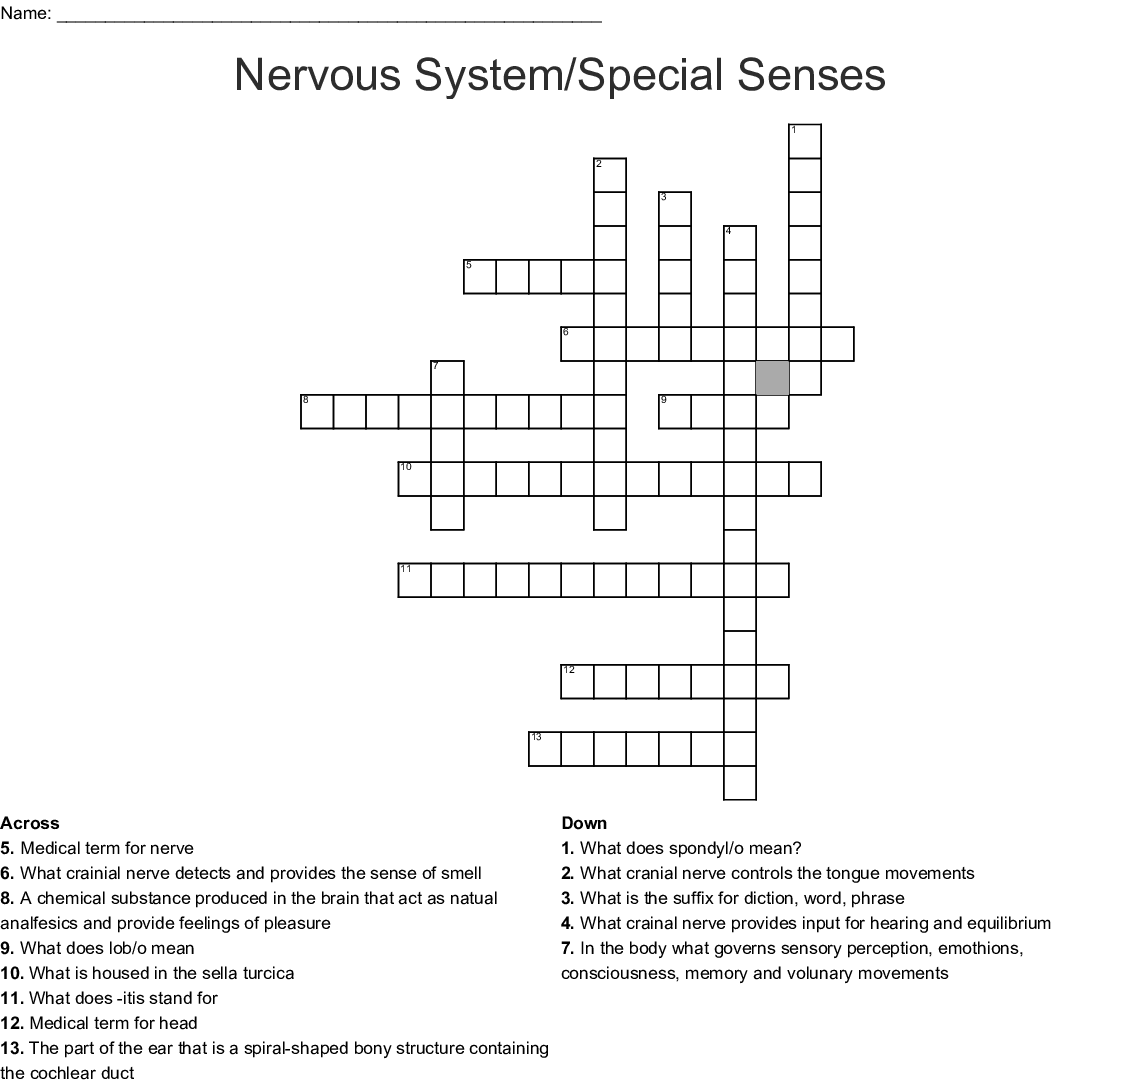 Nervous System Crossword Puzzle Answers Key | printable ...